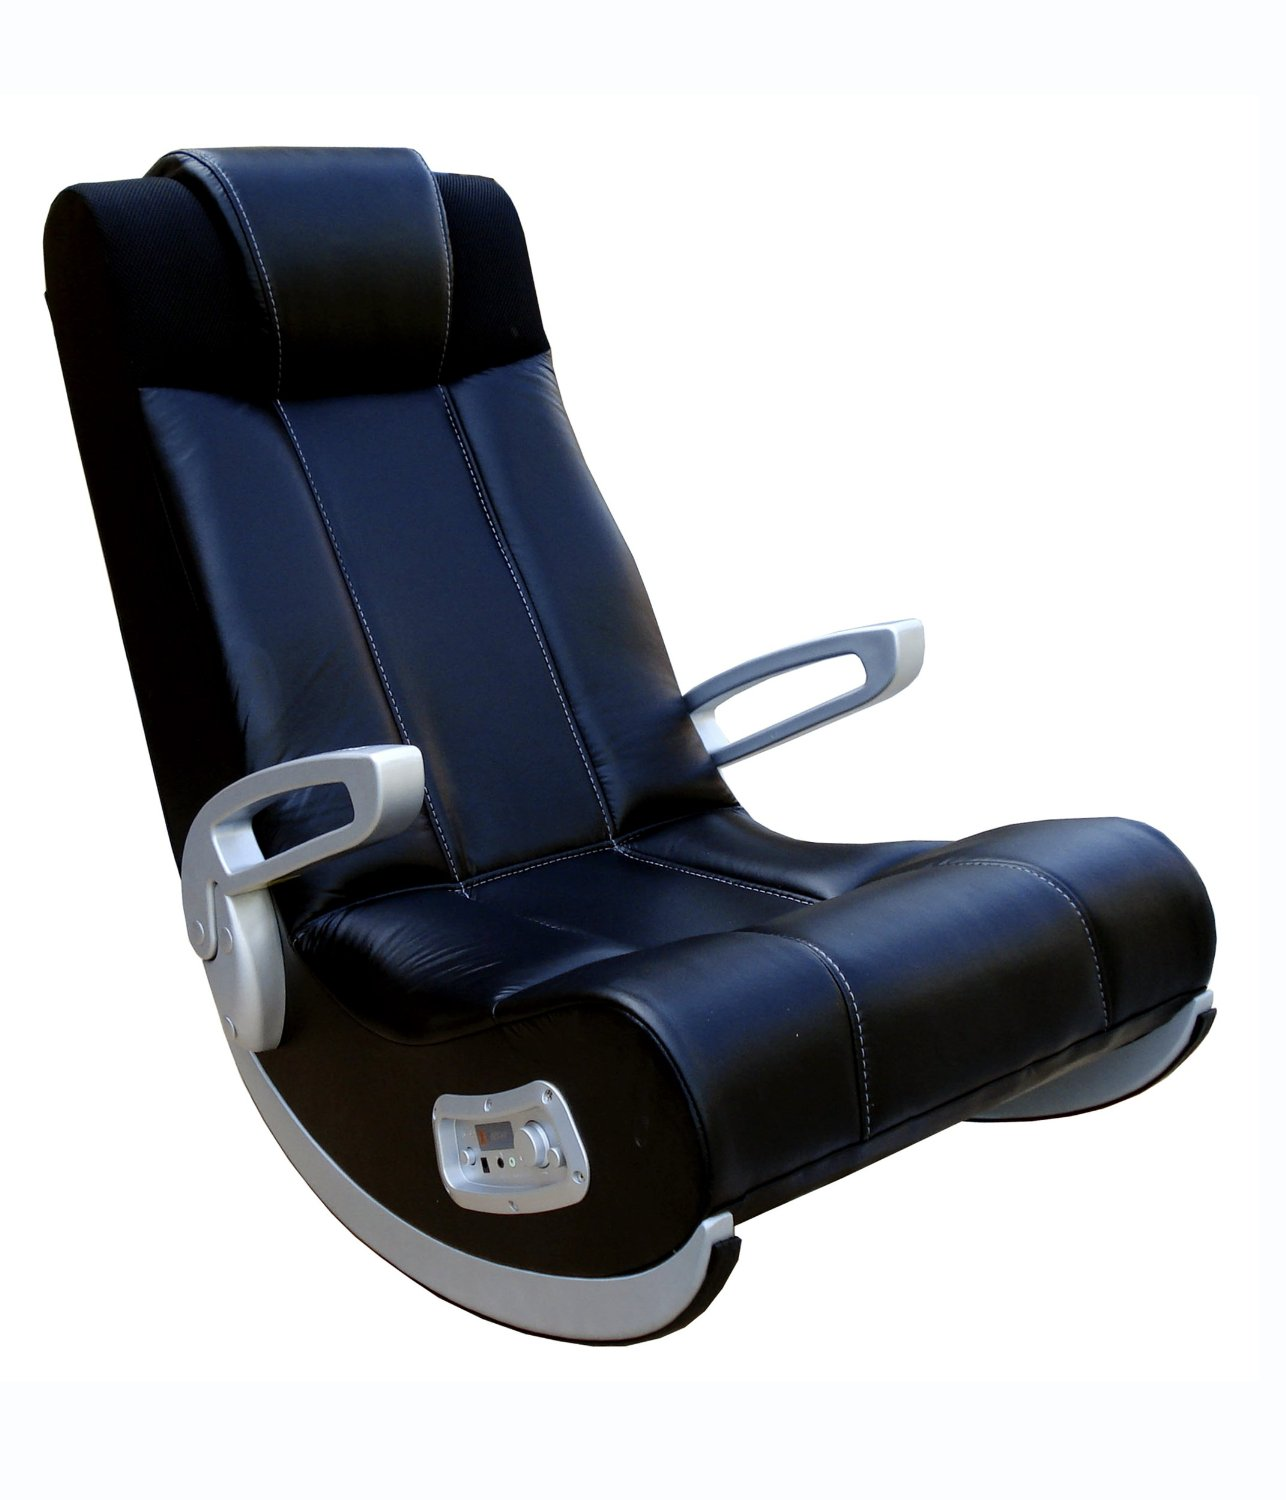 Gaming Chair with Speakers and Vibration  Home Furniture